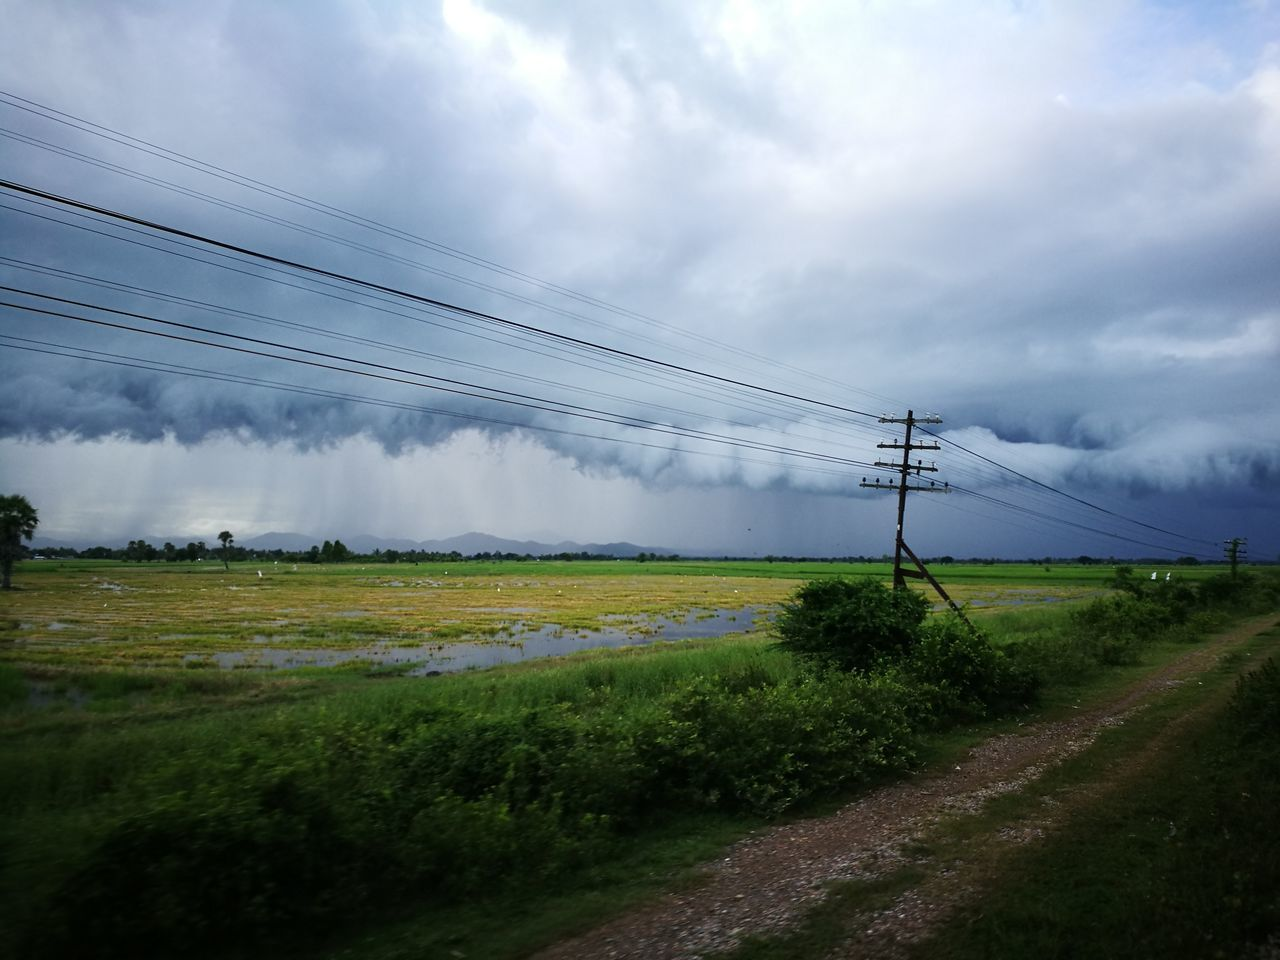 Cloud - Sky Rural Scene Field Cable Agriculture No People Beauty In Nature Landscape Outdoors Day Electricity  Grass Sky Nature Technology Telephone Line Freshness Irrigation Equipment Textured  Backgrounds Summer Stom